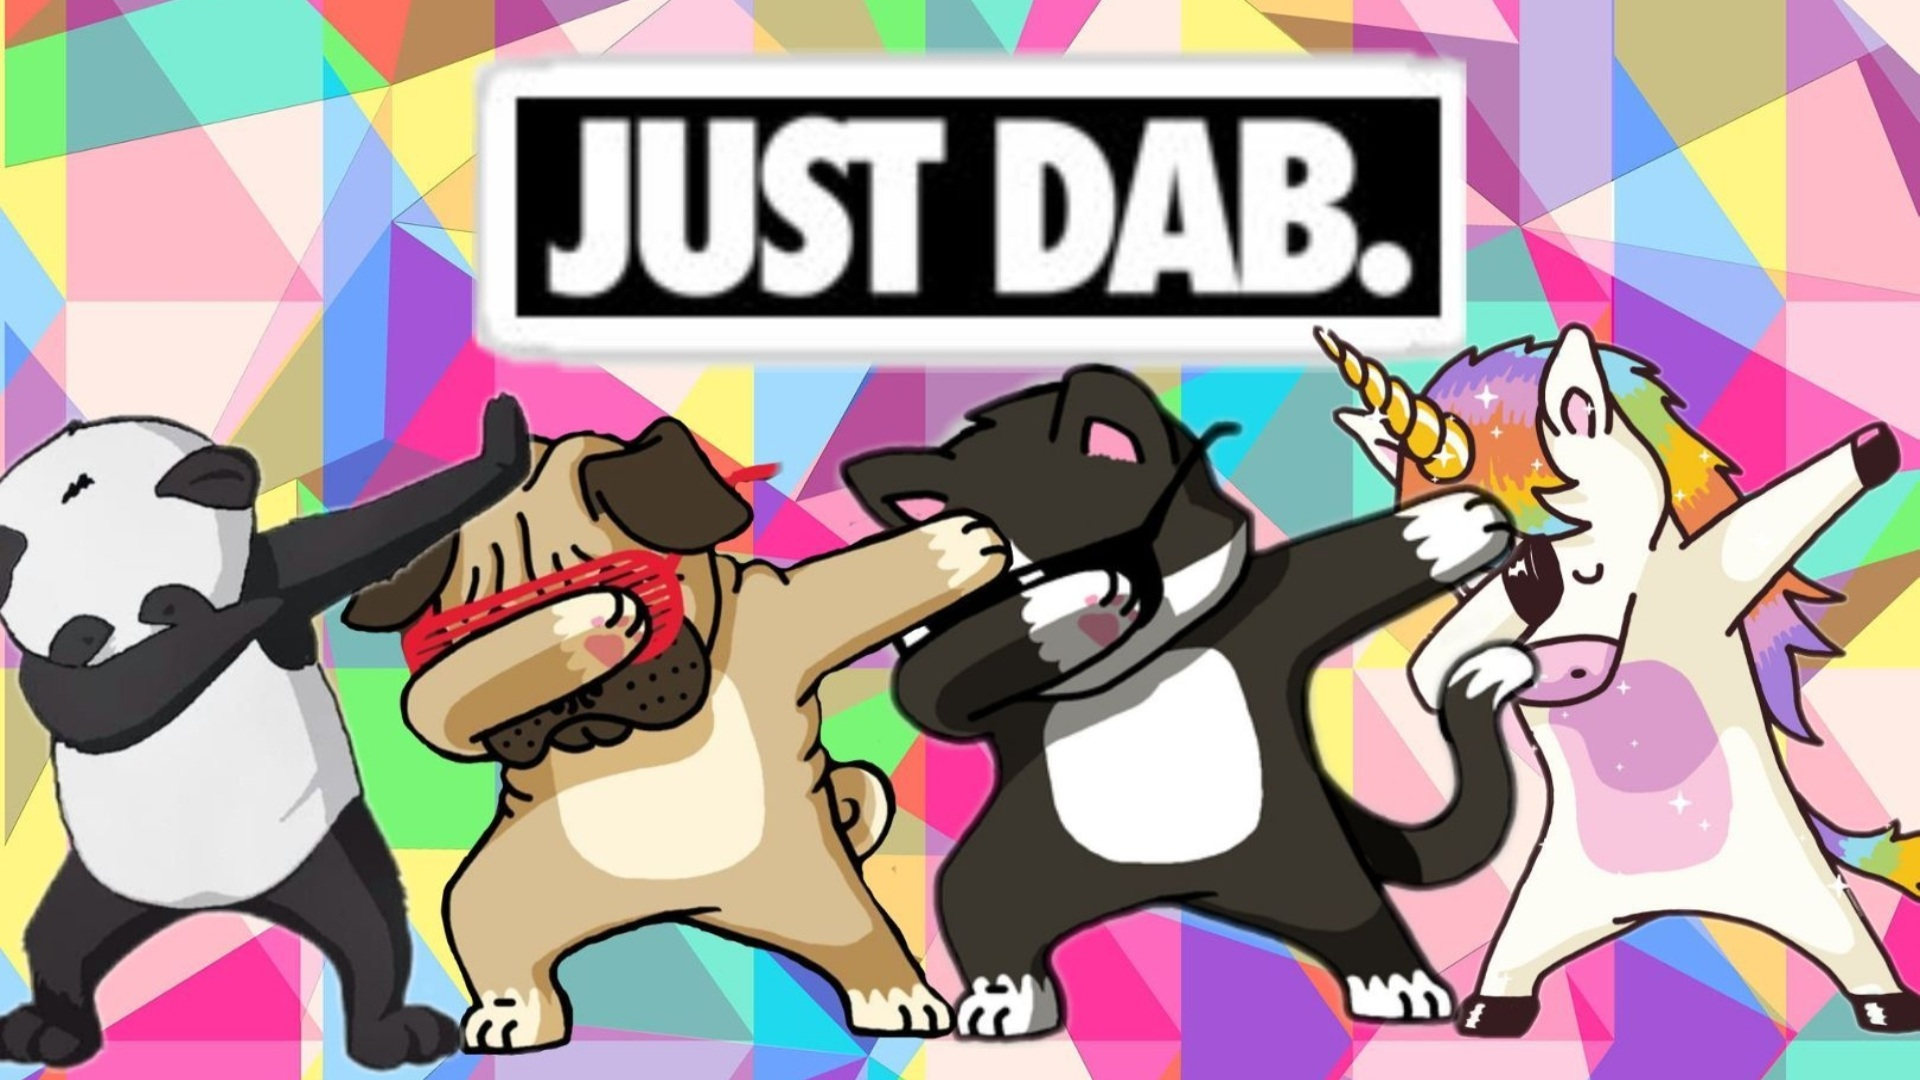 Dab Meme Backgrounds